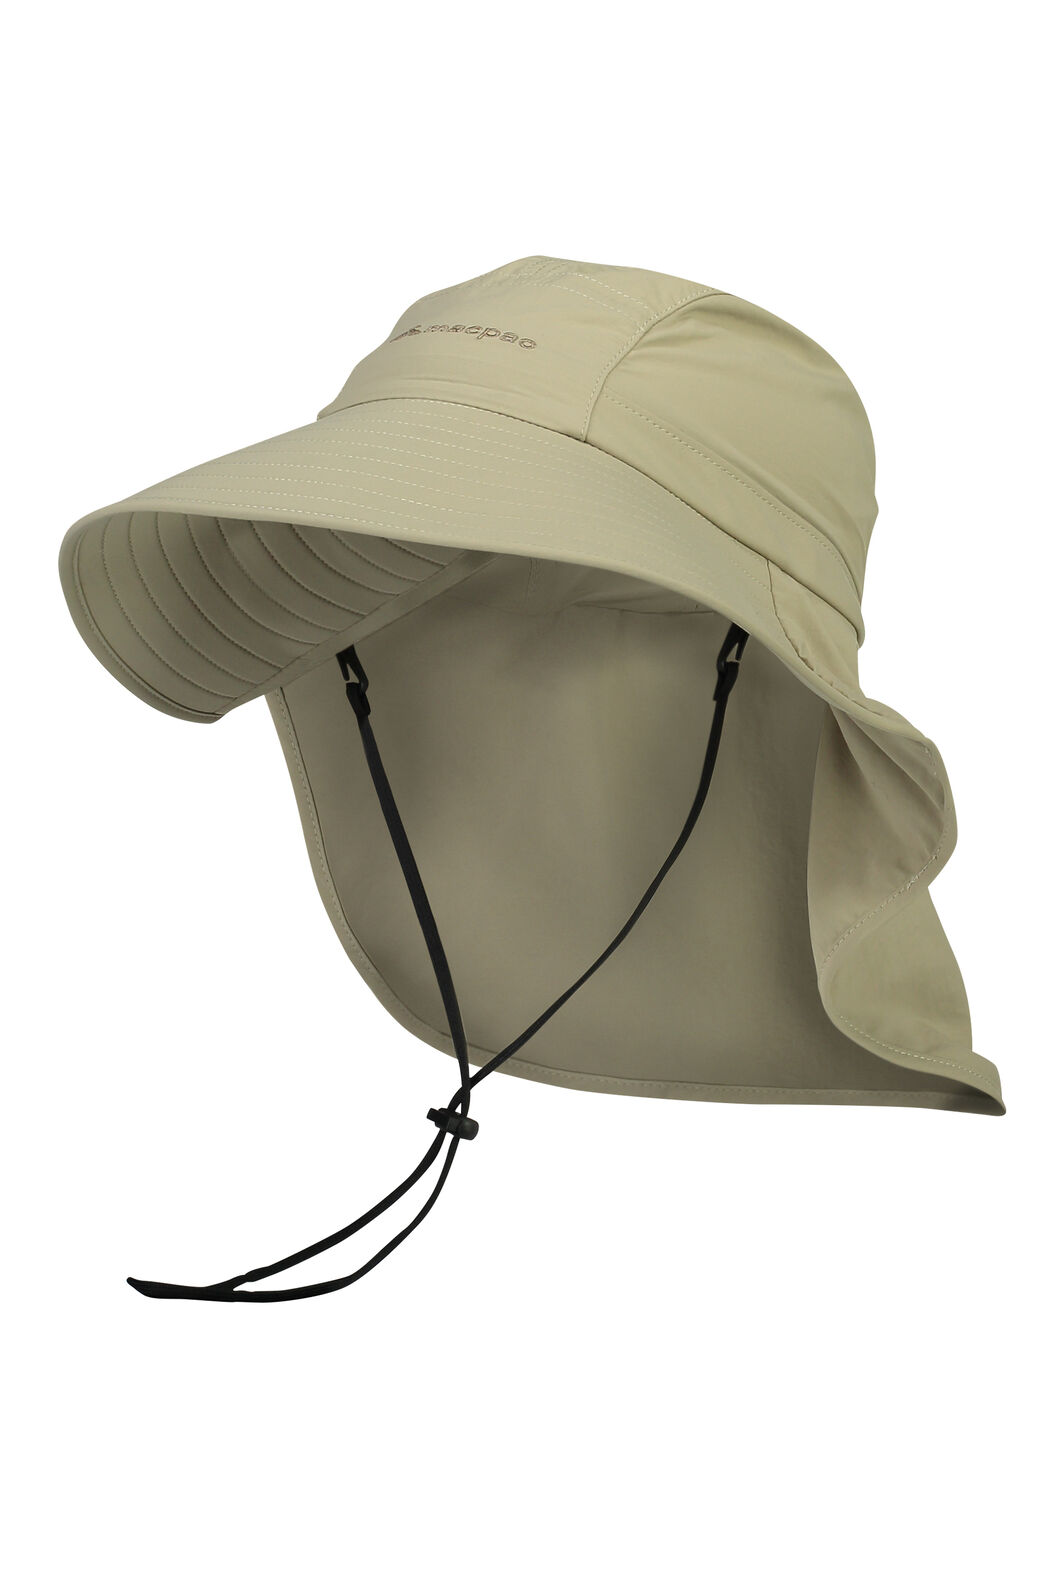 Macpac Encompass Hat, Khaki, hi-res